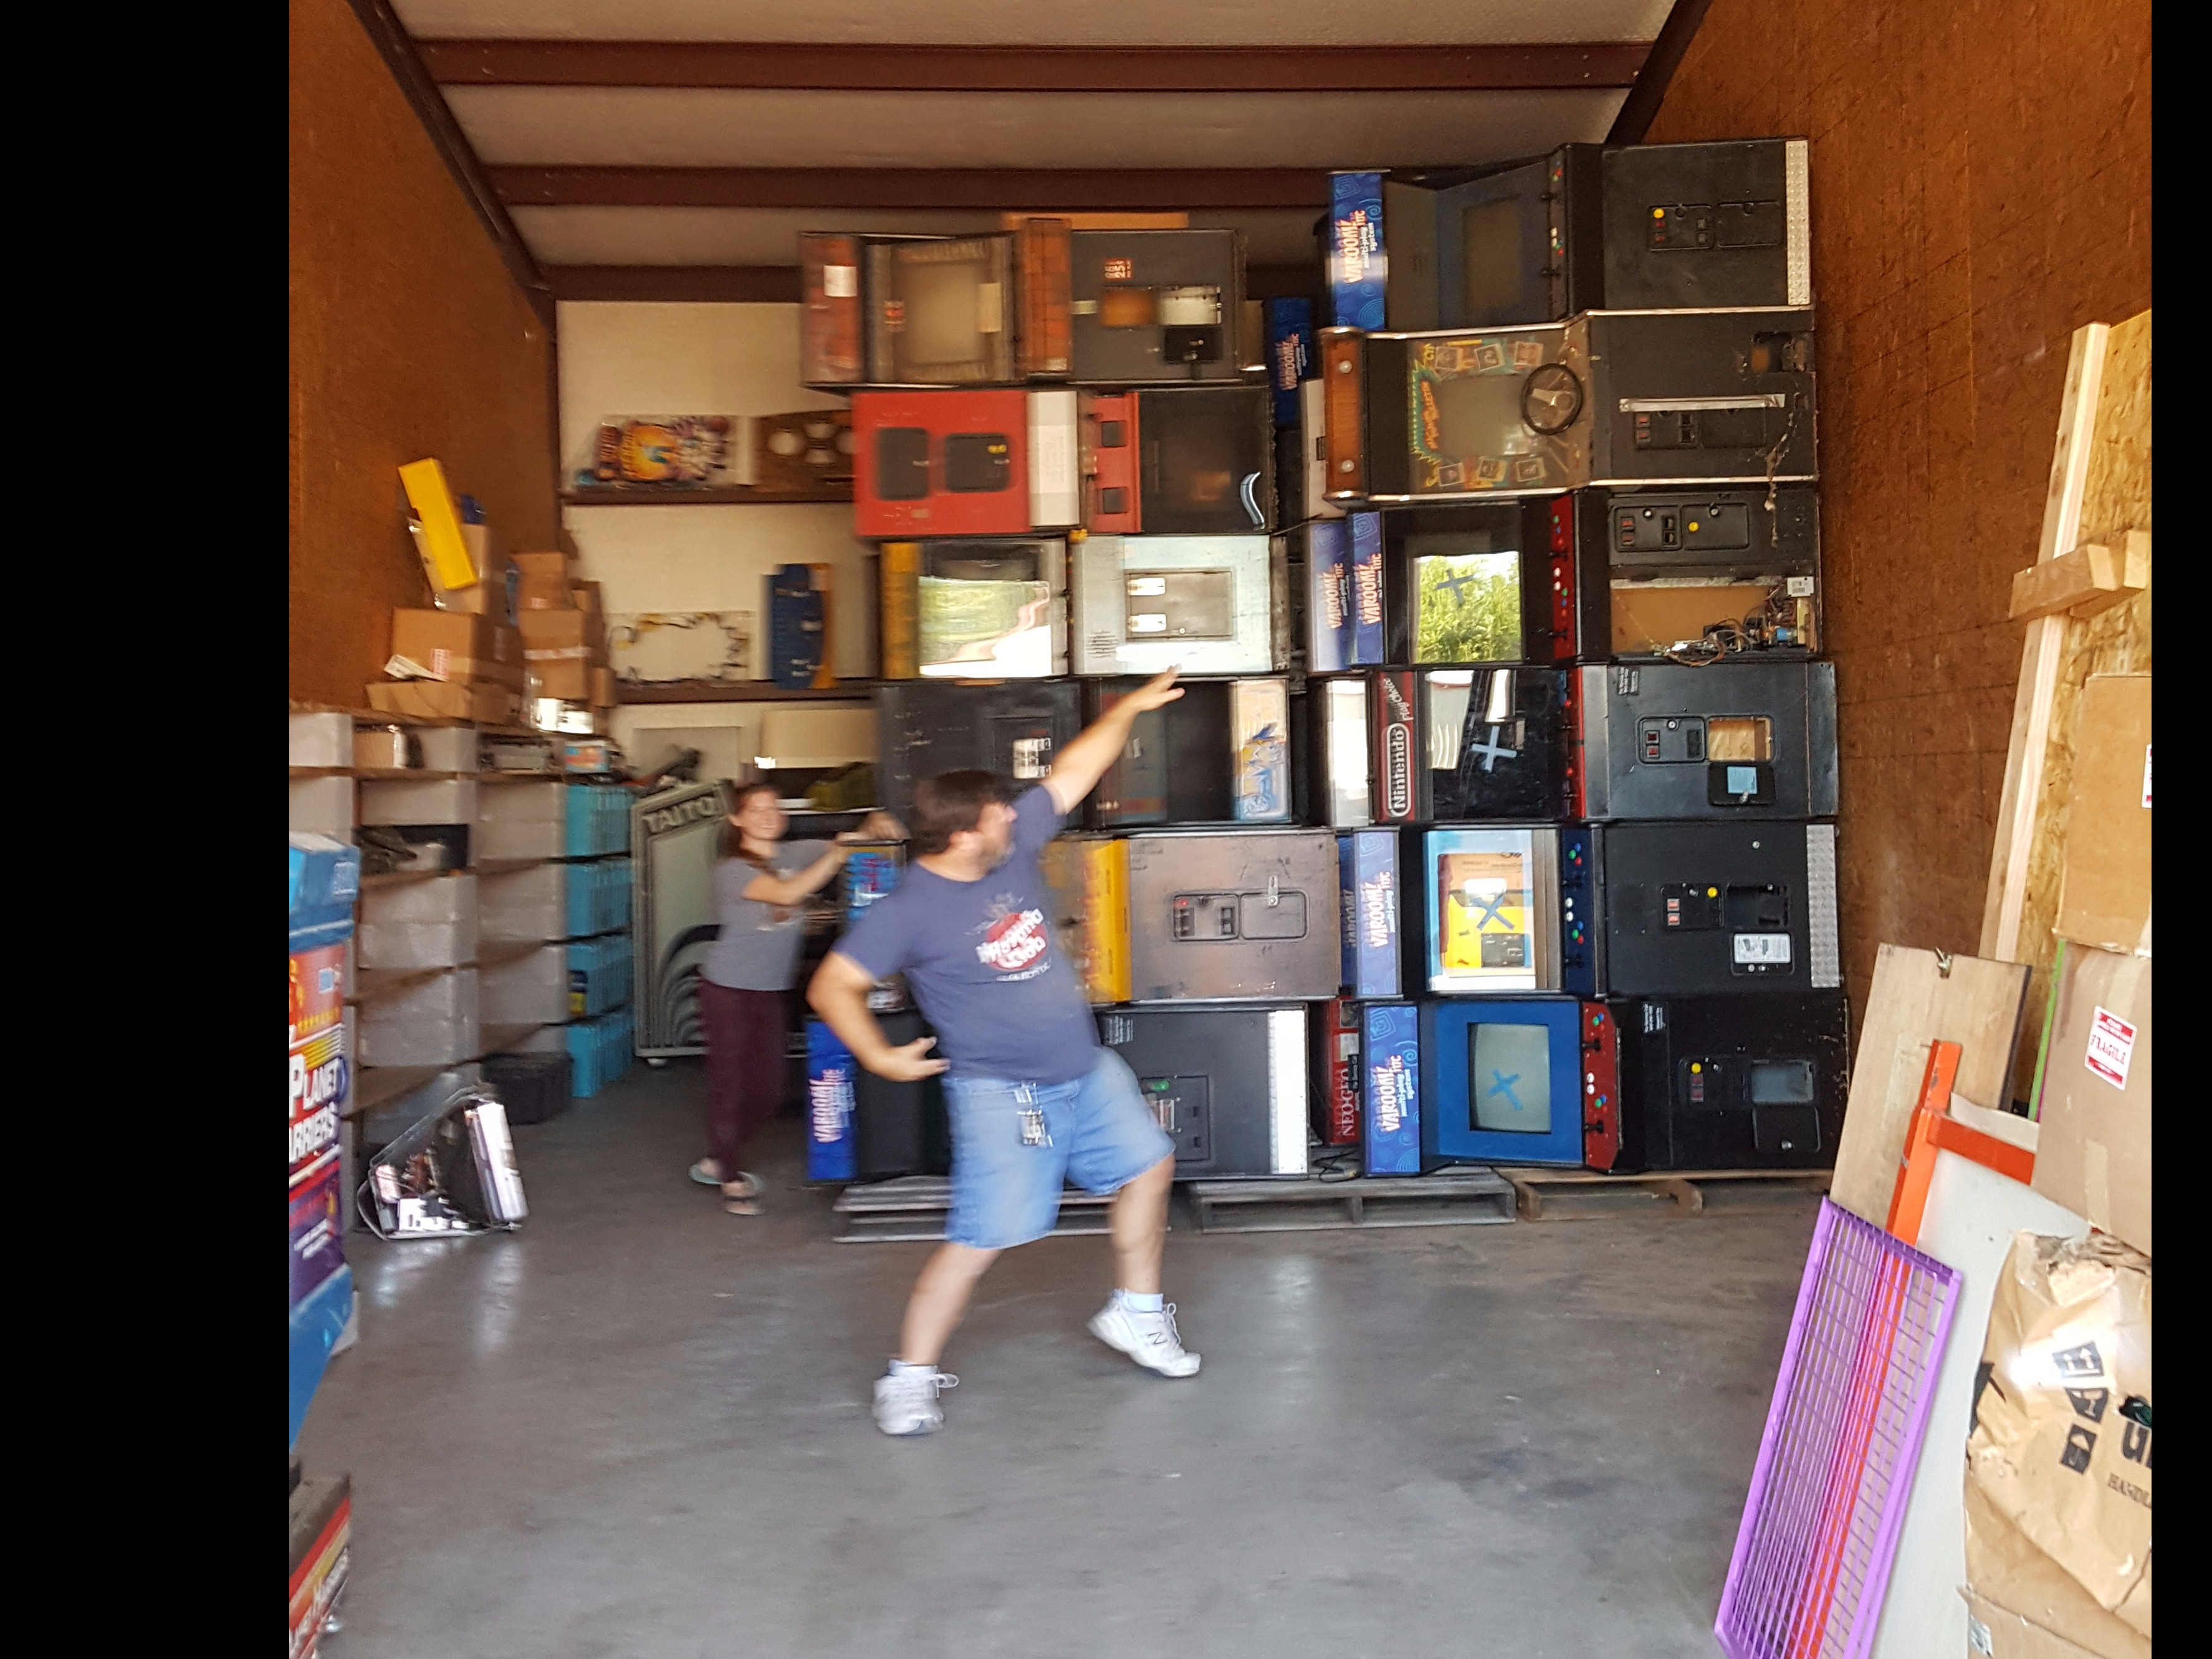 Commercial Moving Services Red Carpet Moving Tyler Tx